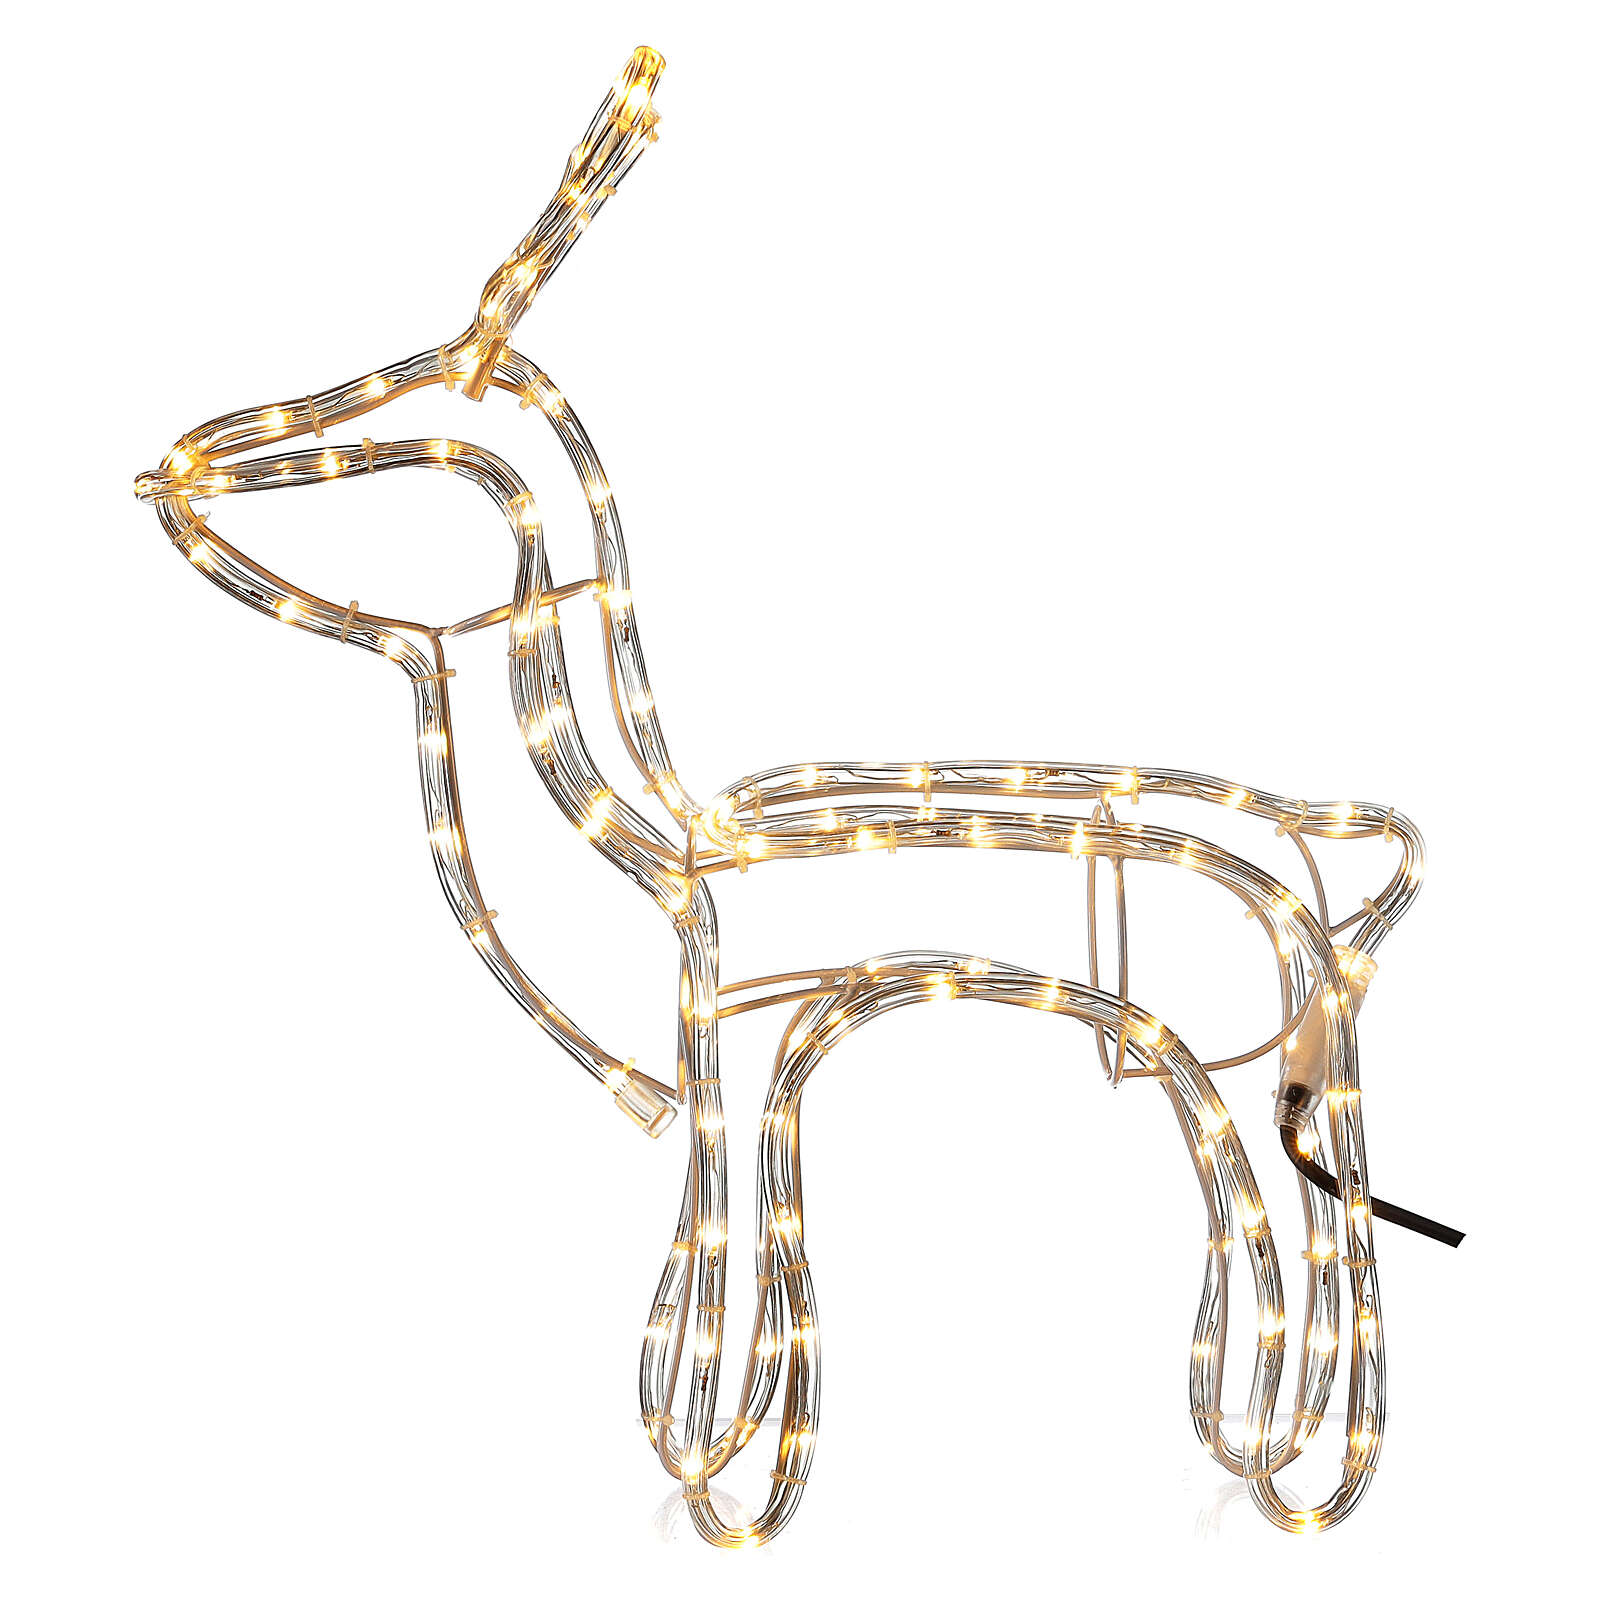 Illuminated reindeer warm white 120 LEDs h 55 cm electric powered OUTDOORS 3